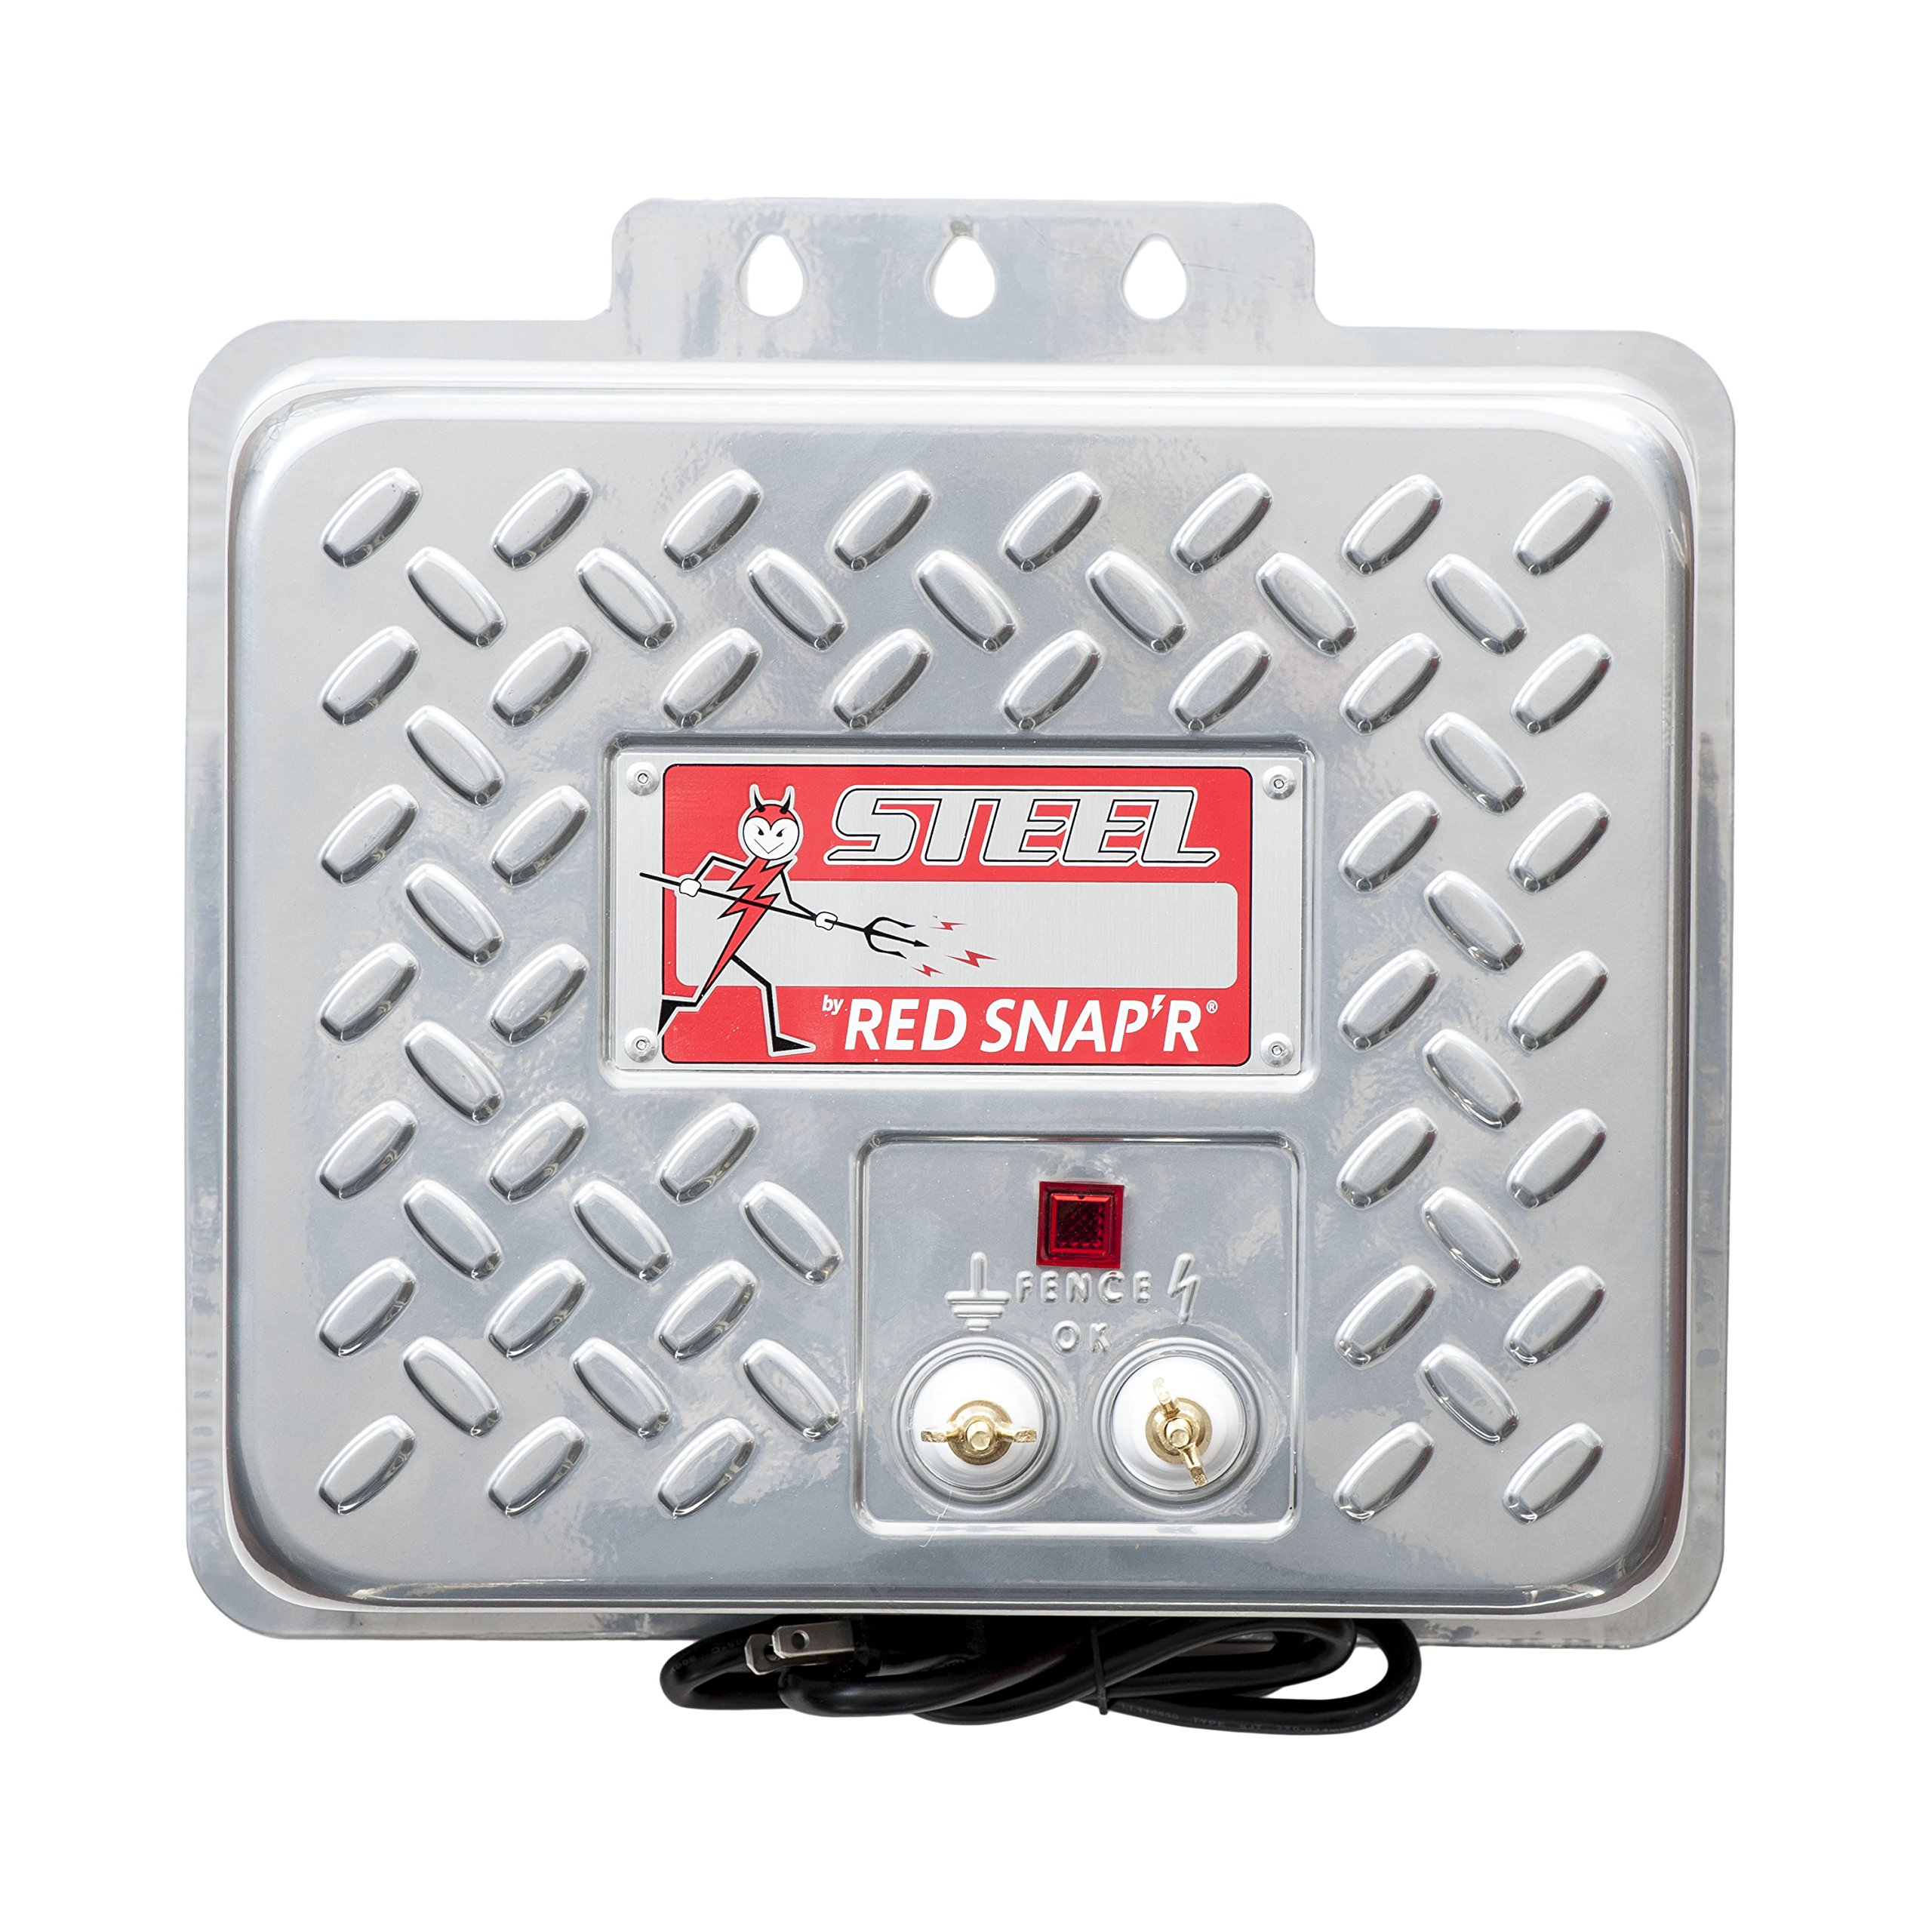 RED SNAP'R EAC60M-RSS Steel 60 Mile AC Fence Charger by RED SNAP'R